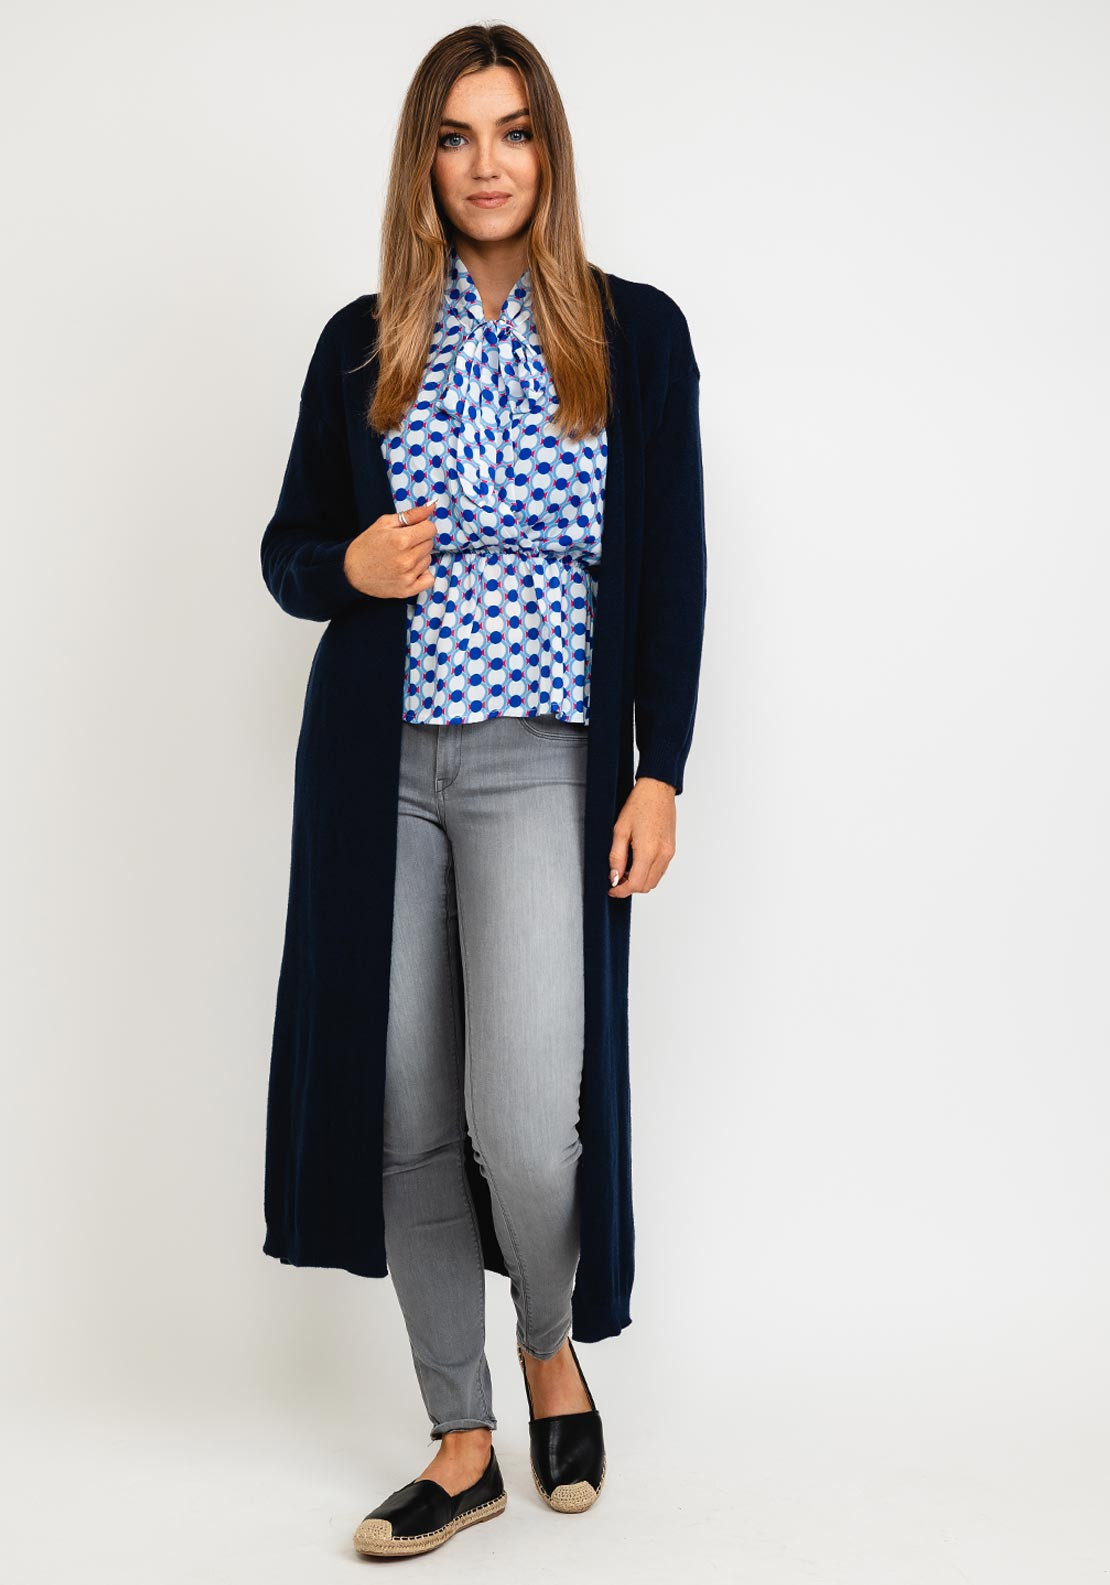 Kate & Pippa Monza Long Line Open One Size Cardigan, Navy